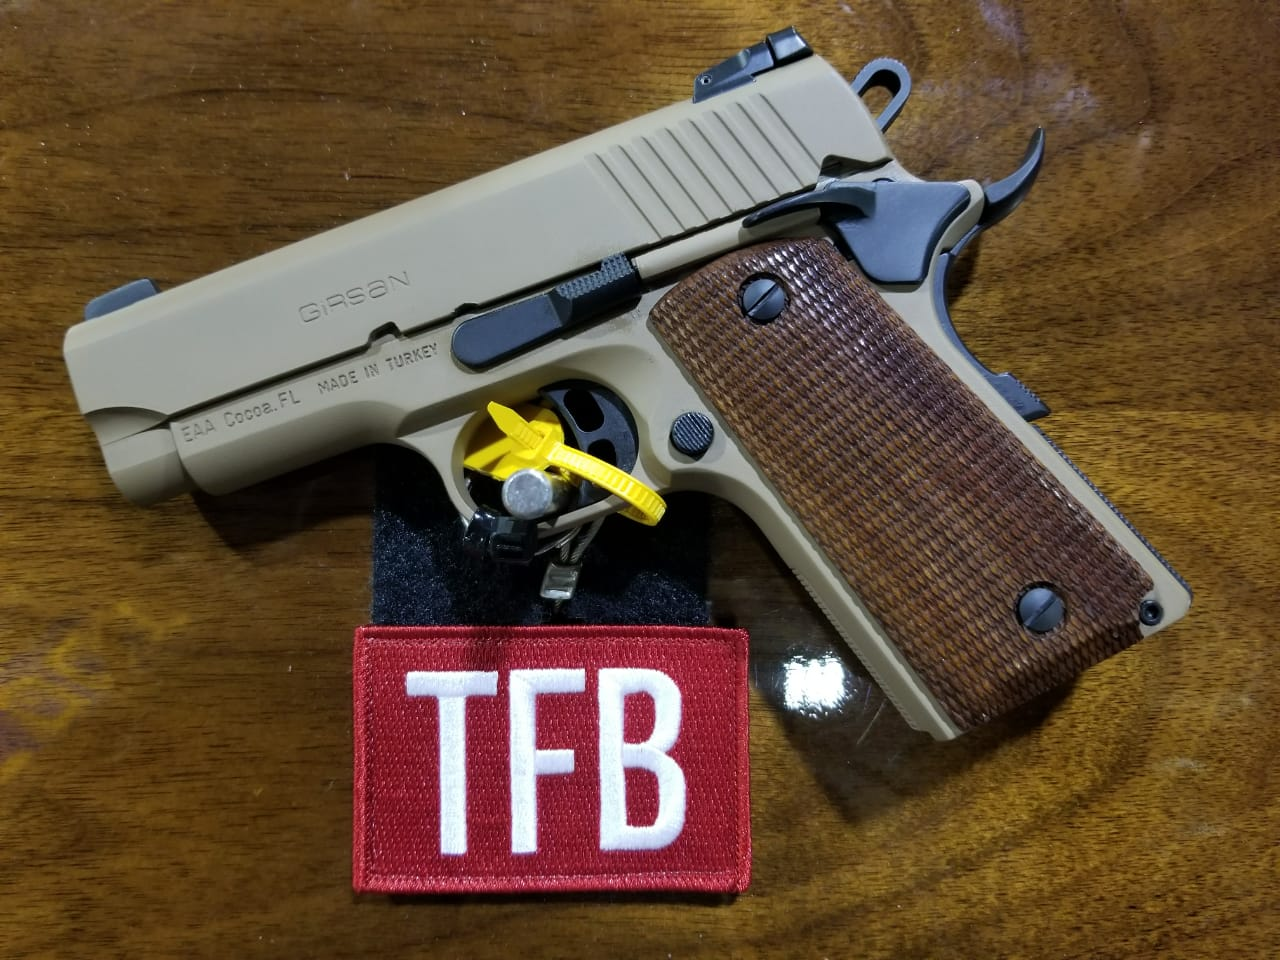 1911s sure look good. But do they make a good first concealed carry handgun? That is open to discussion.